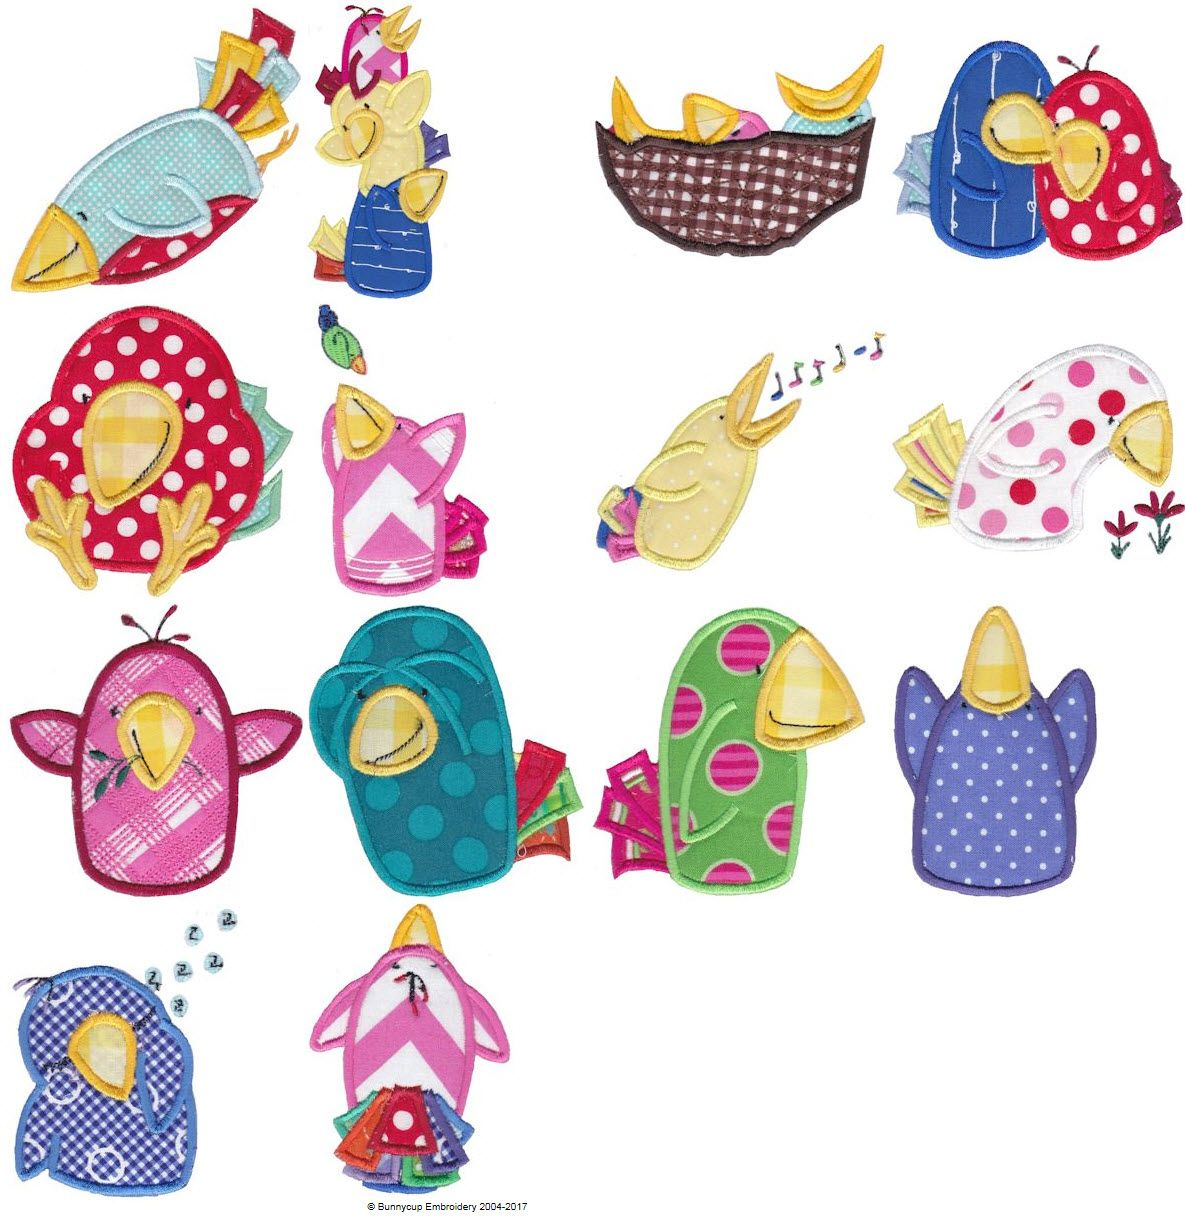 Silly Birds Applique Bird Applique Embroidery Designs And Machine